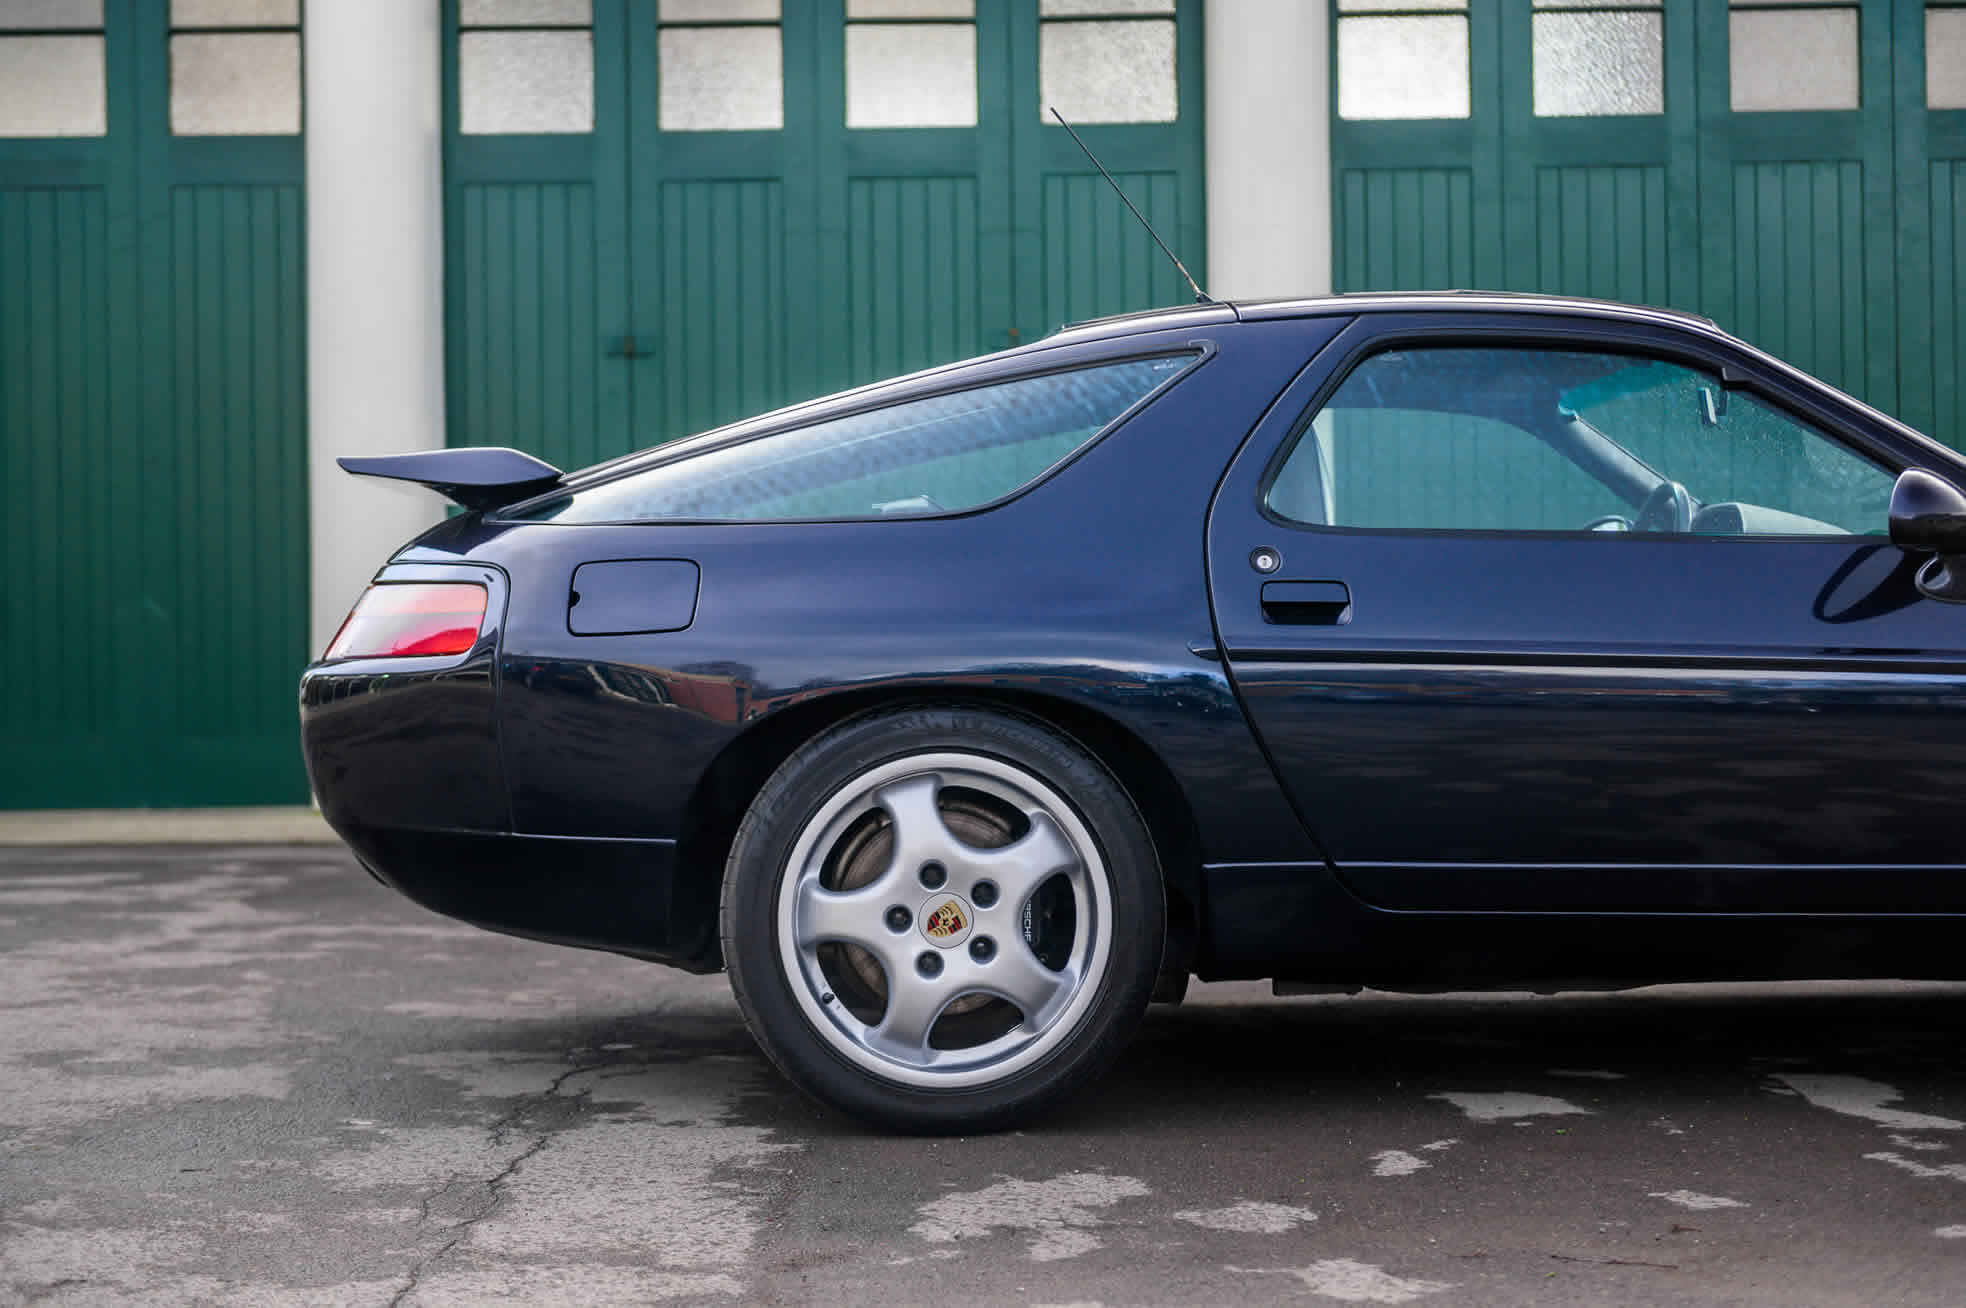 For Sale, 1992 Porsche 928 GTS, Sports Purpose Porsche Specialists, side rear view